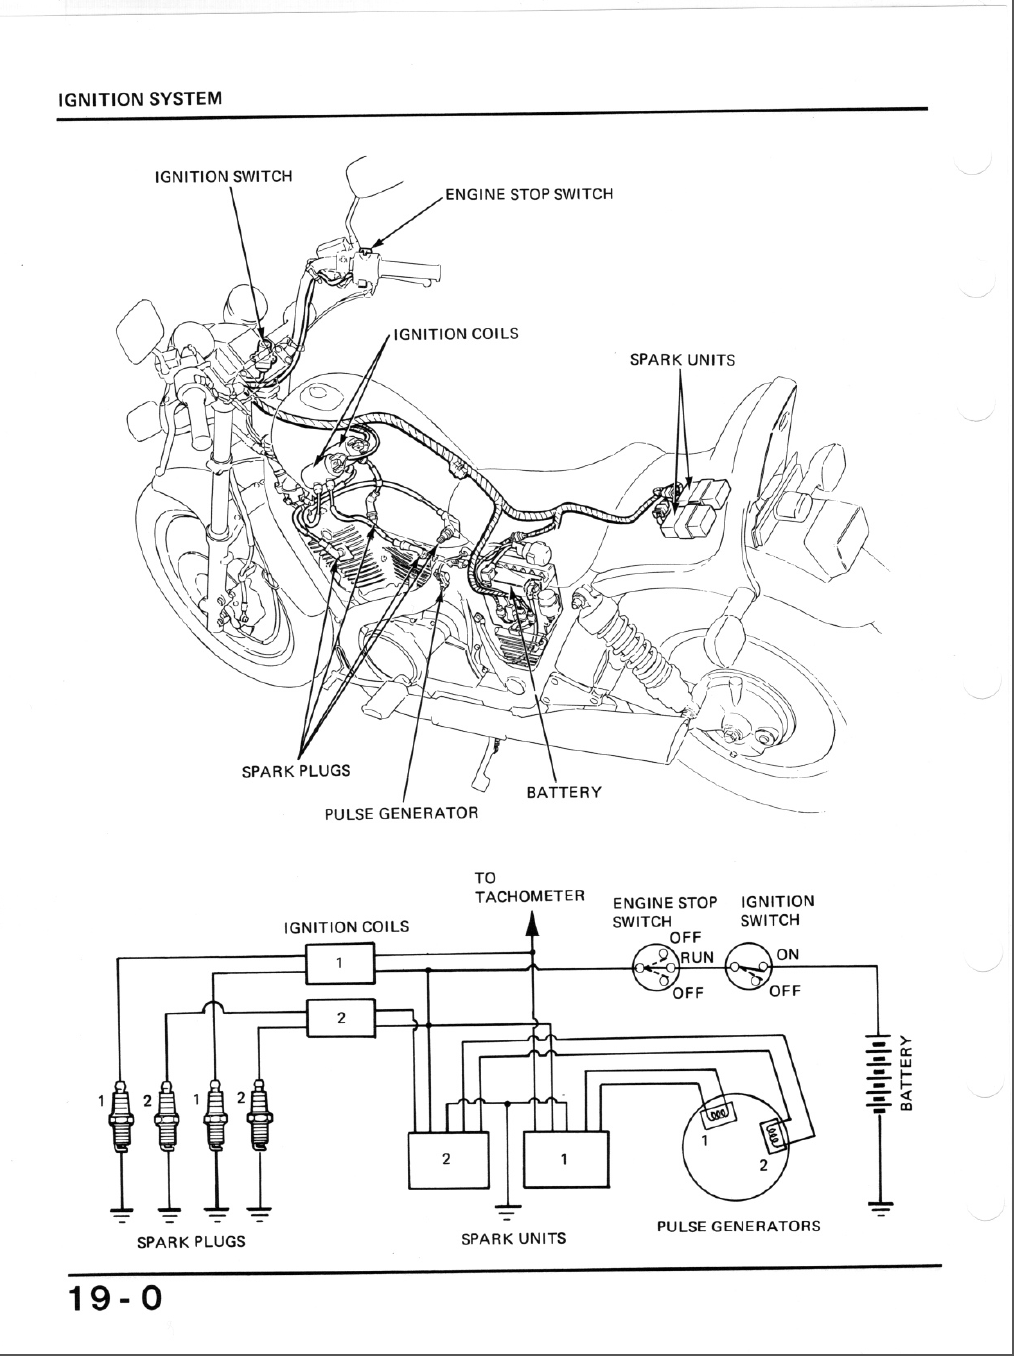 Honda Shadow Vt500 Motorcycle Wiring Diagram 44 Turn Signal On Lights 9267d1409799693 1984 700 Ignition System Chinese Atv Diagrams At